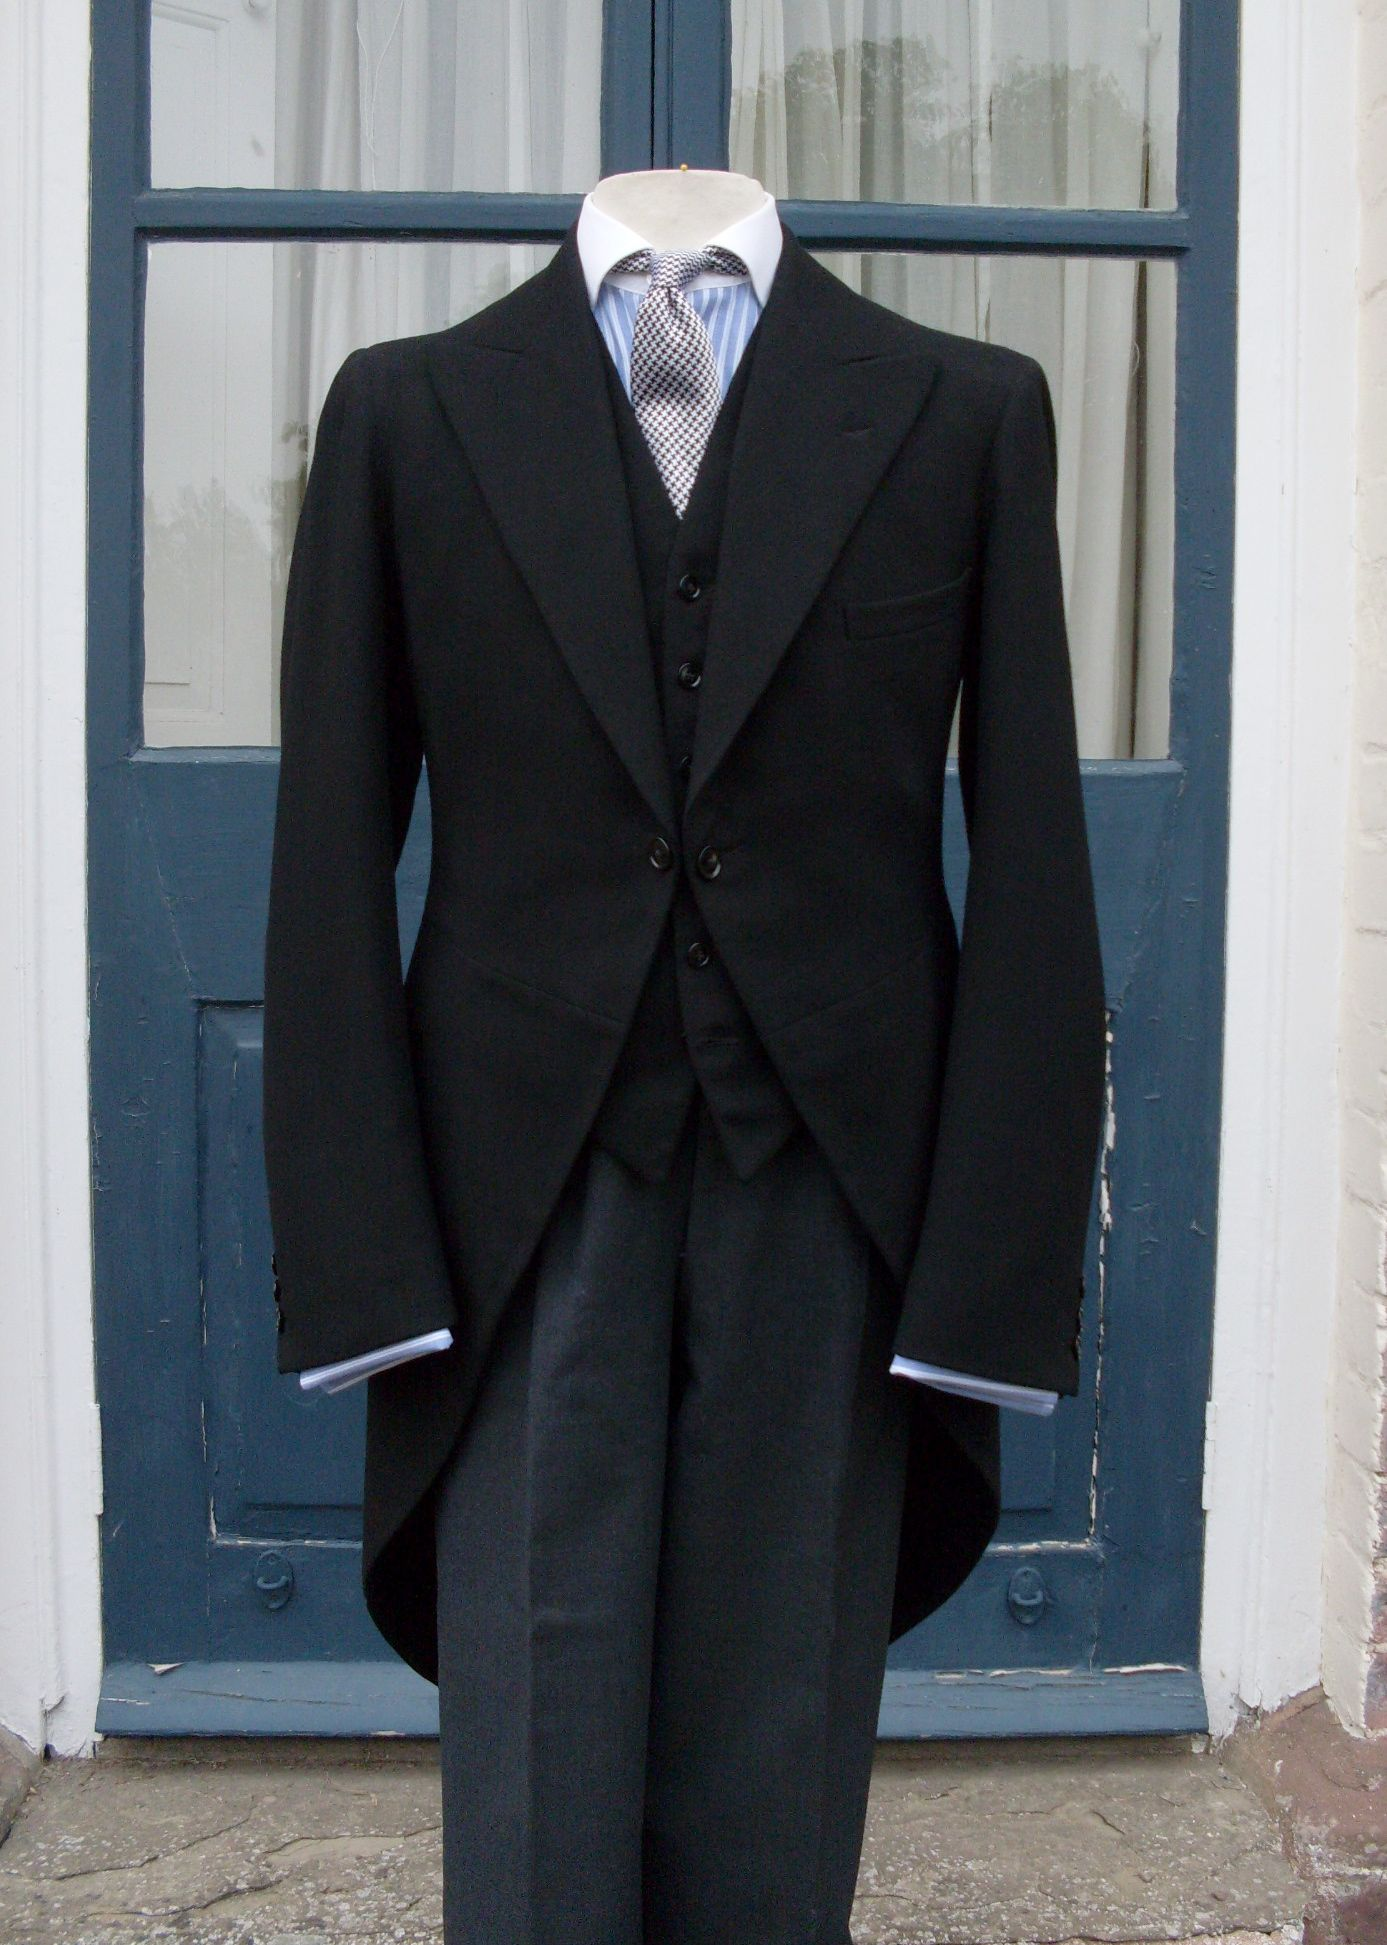 Vintage 1950s BURTON SB Suit Single Breasted Jacket Trousers Grey Blue POW Prince of Wales Check Glen Plaid Burtons 1940s Style 42 44